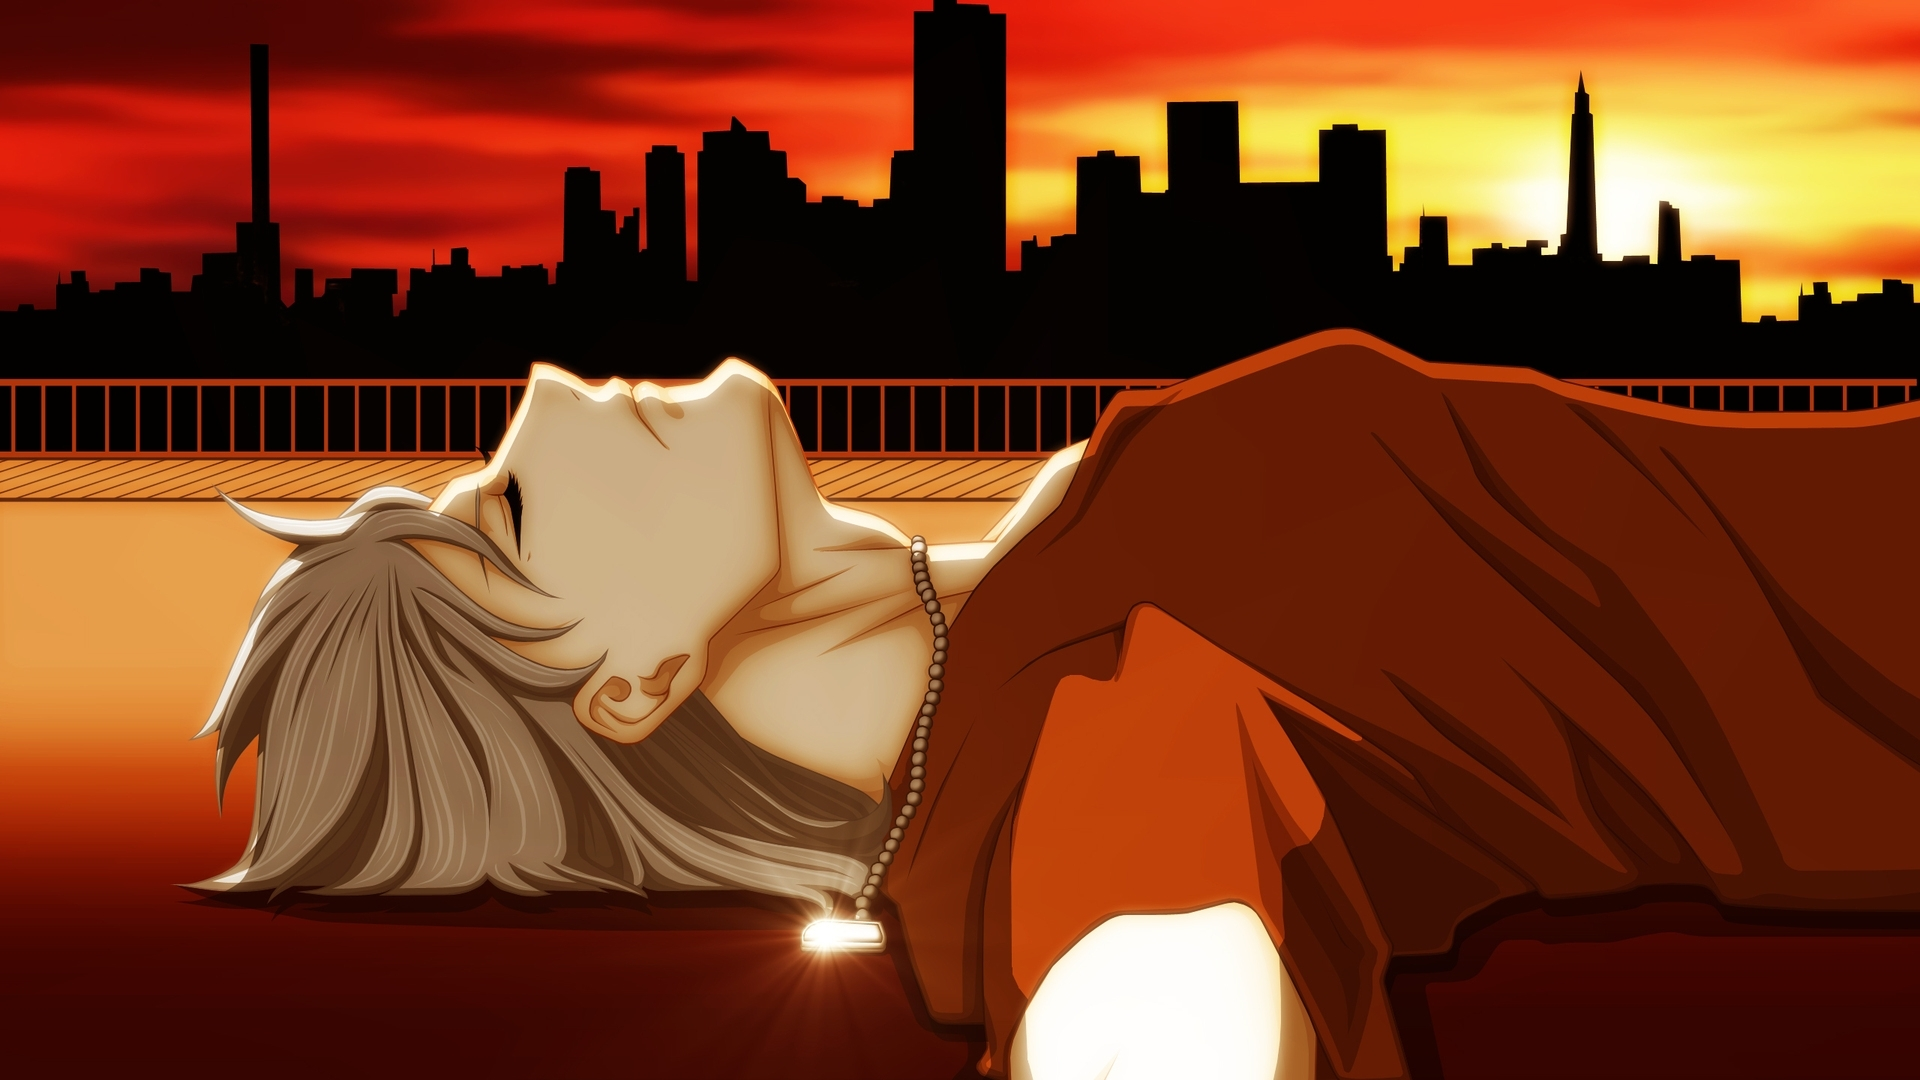 28971 download wallpaper Anime, Men screensavers and pictures for free